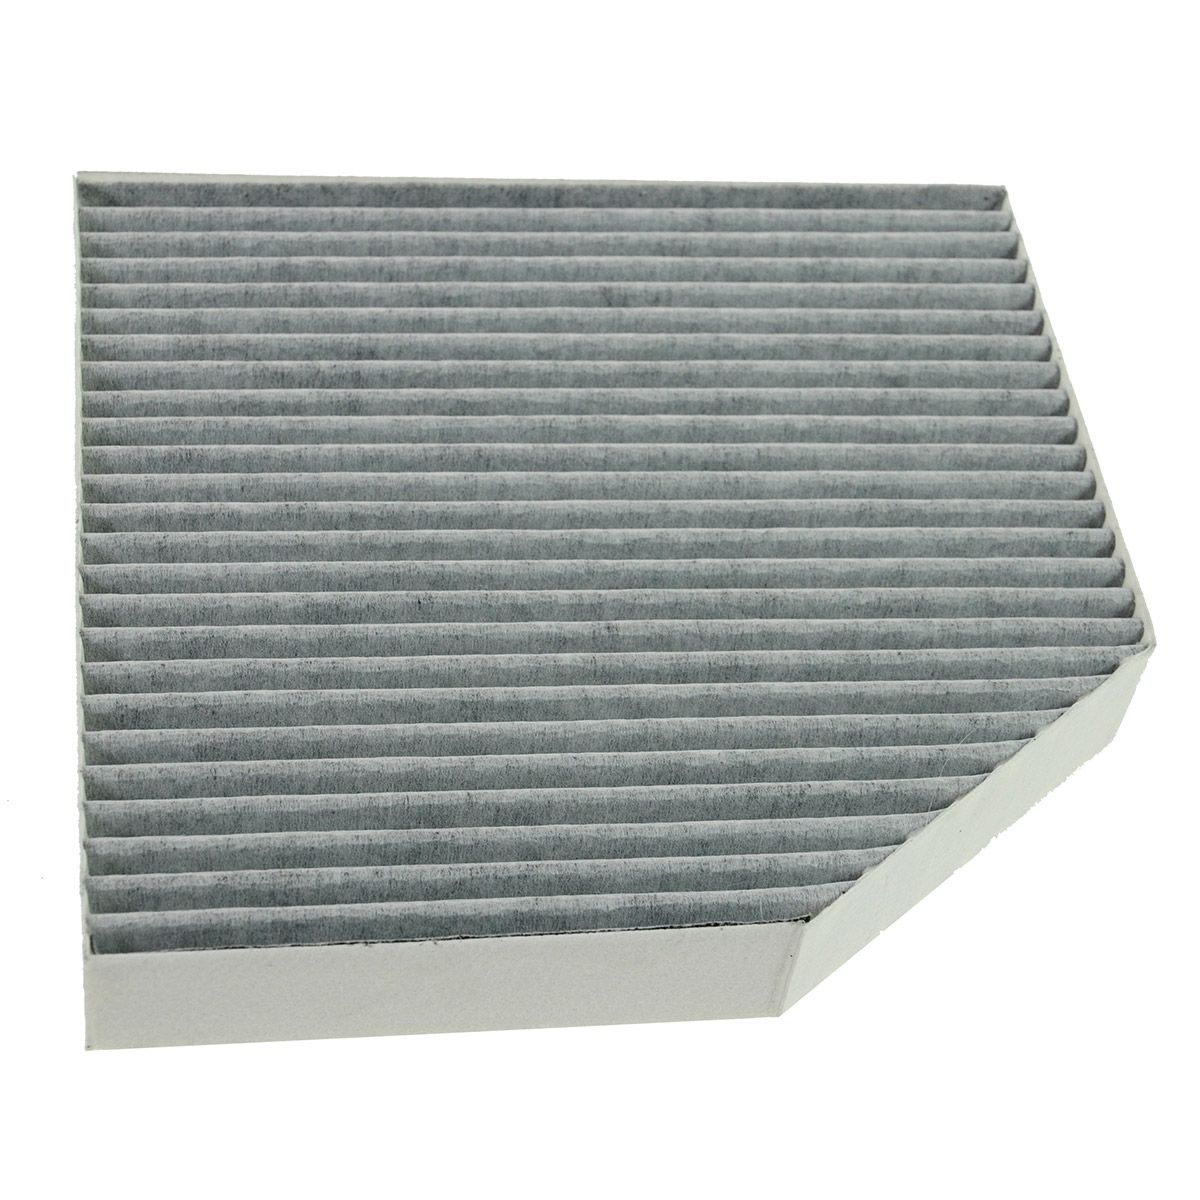 Cabin Fresh Air Filter Carbon Element New for 11-13 Audi A6 S6 A7 S7 A8 A8L